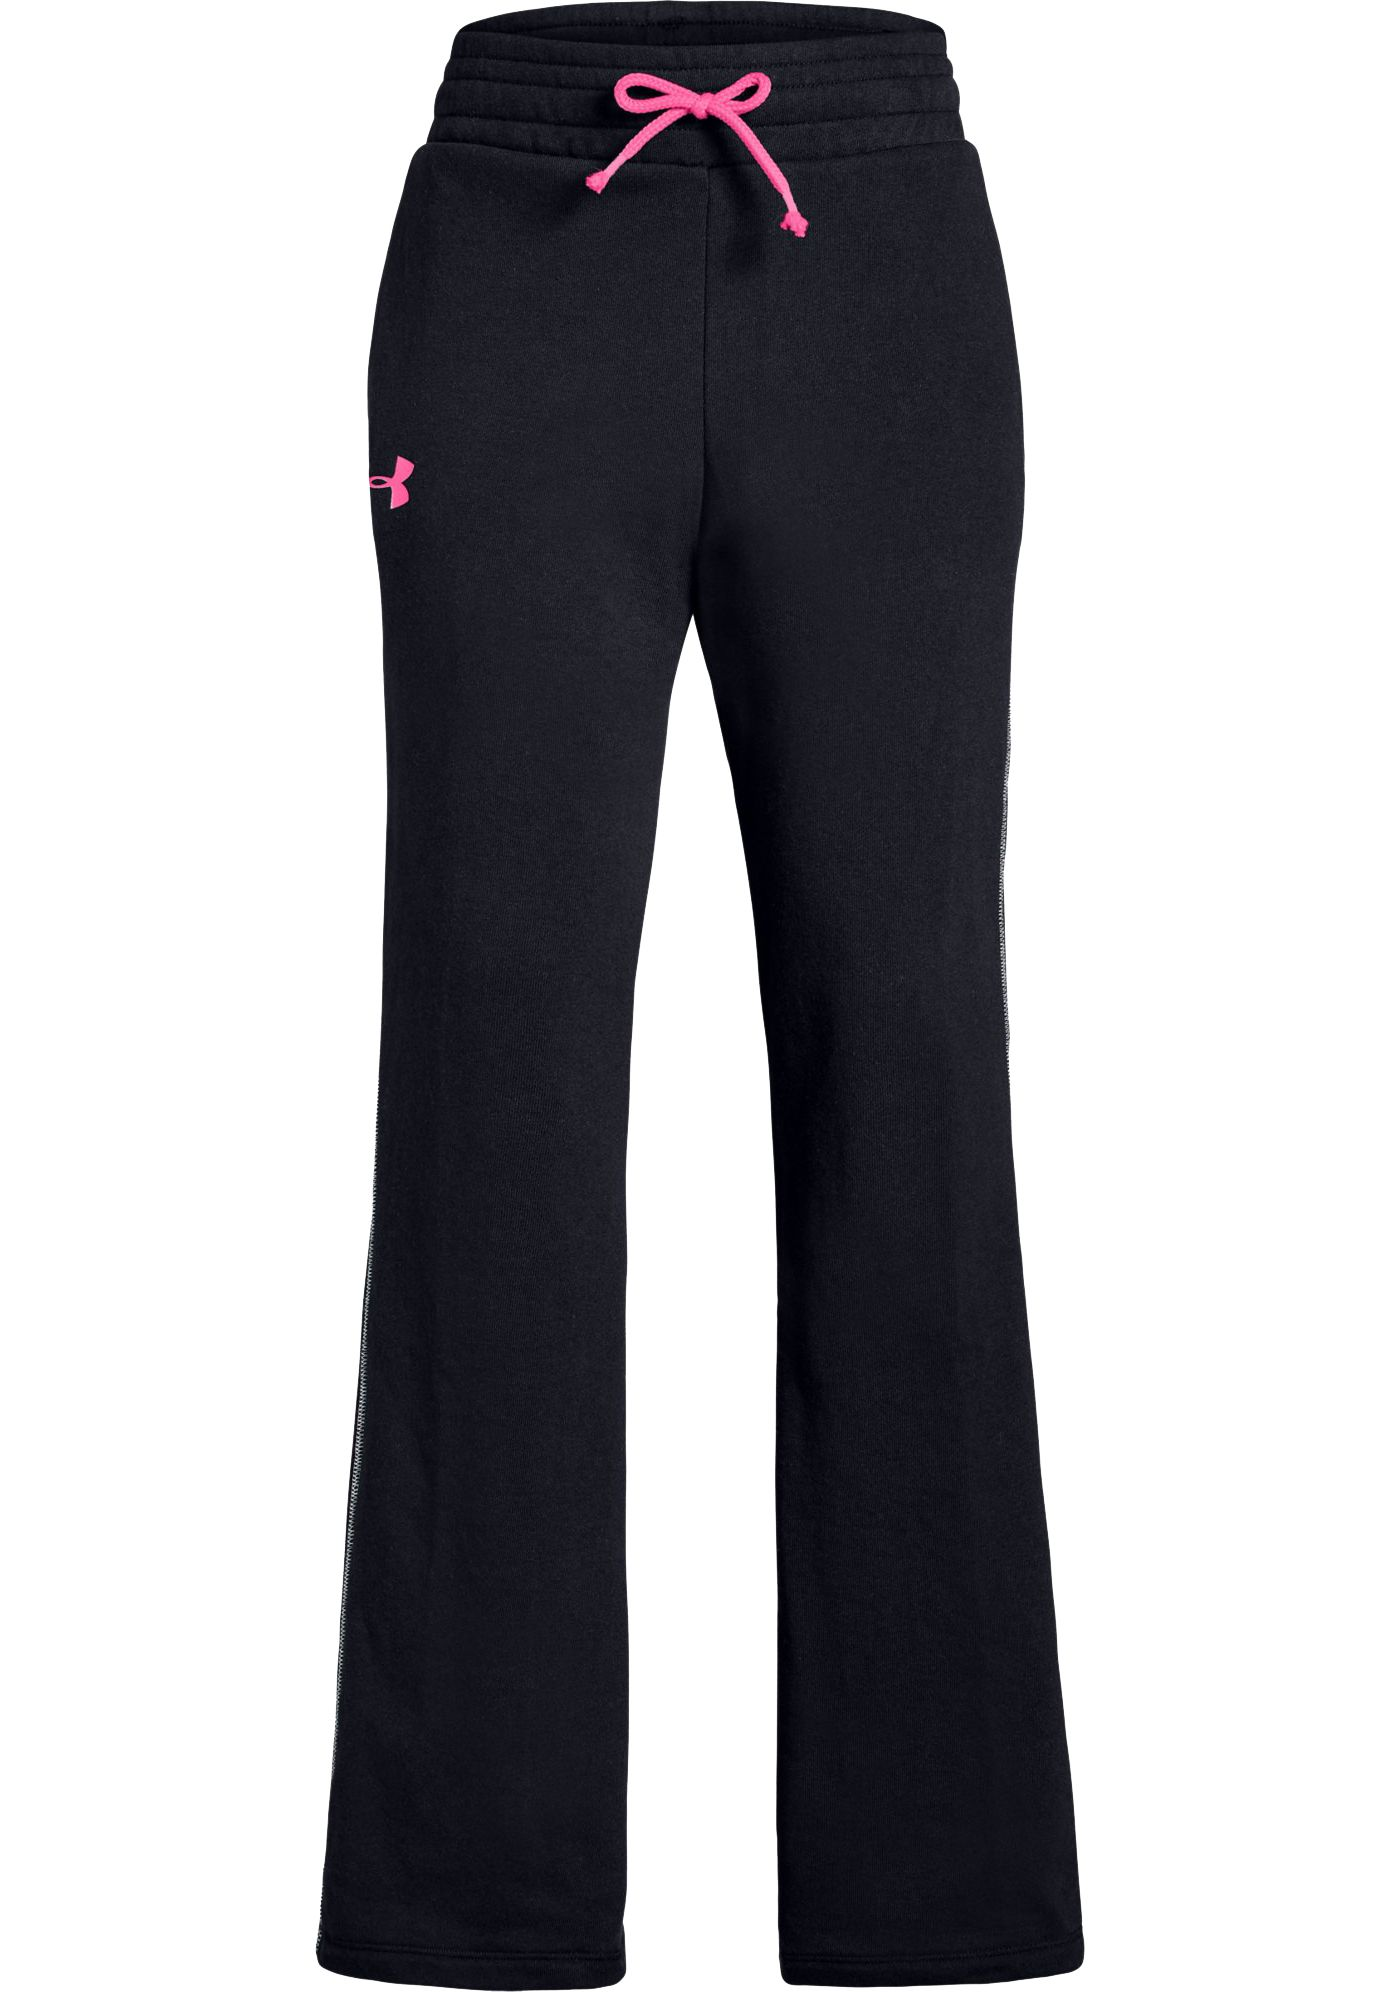 Under Armour Girl's Rival Terry Track Pants